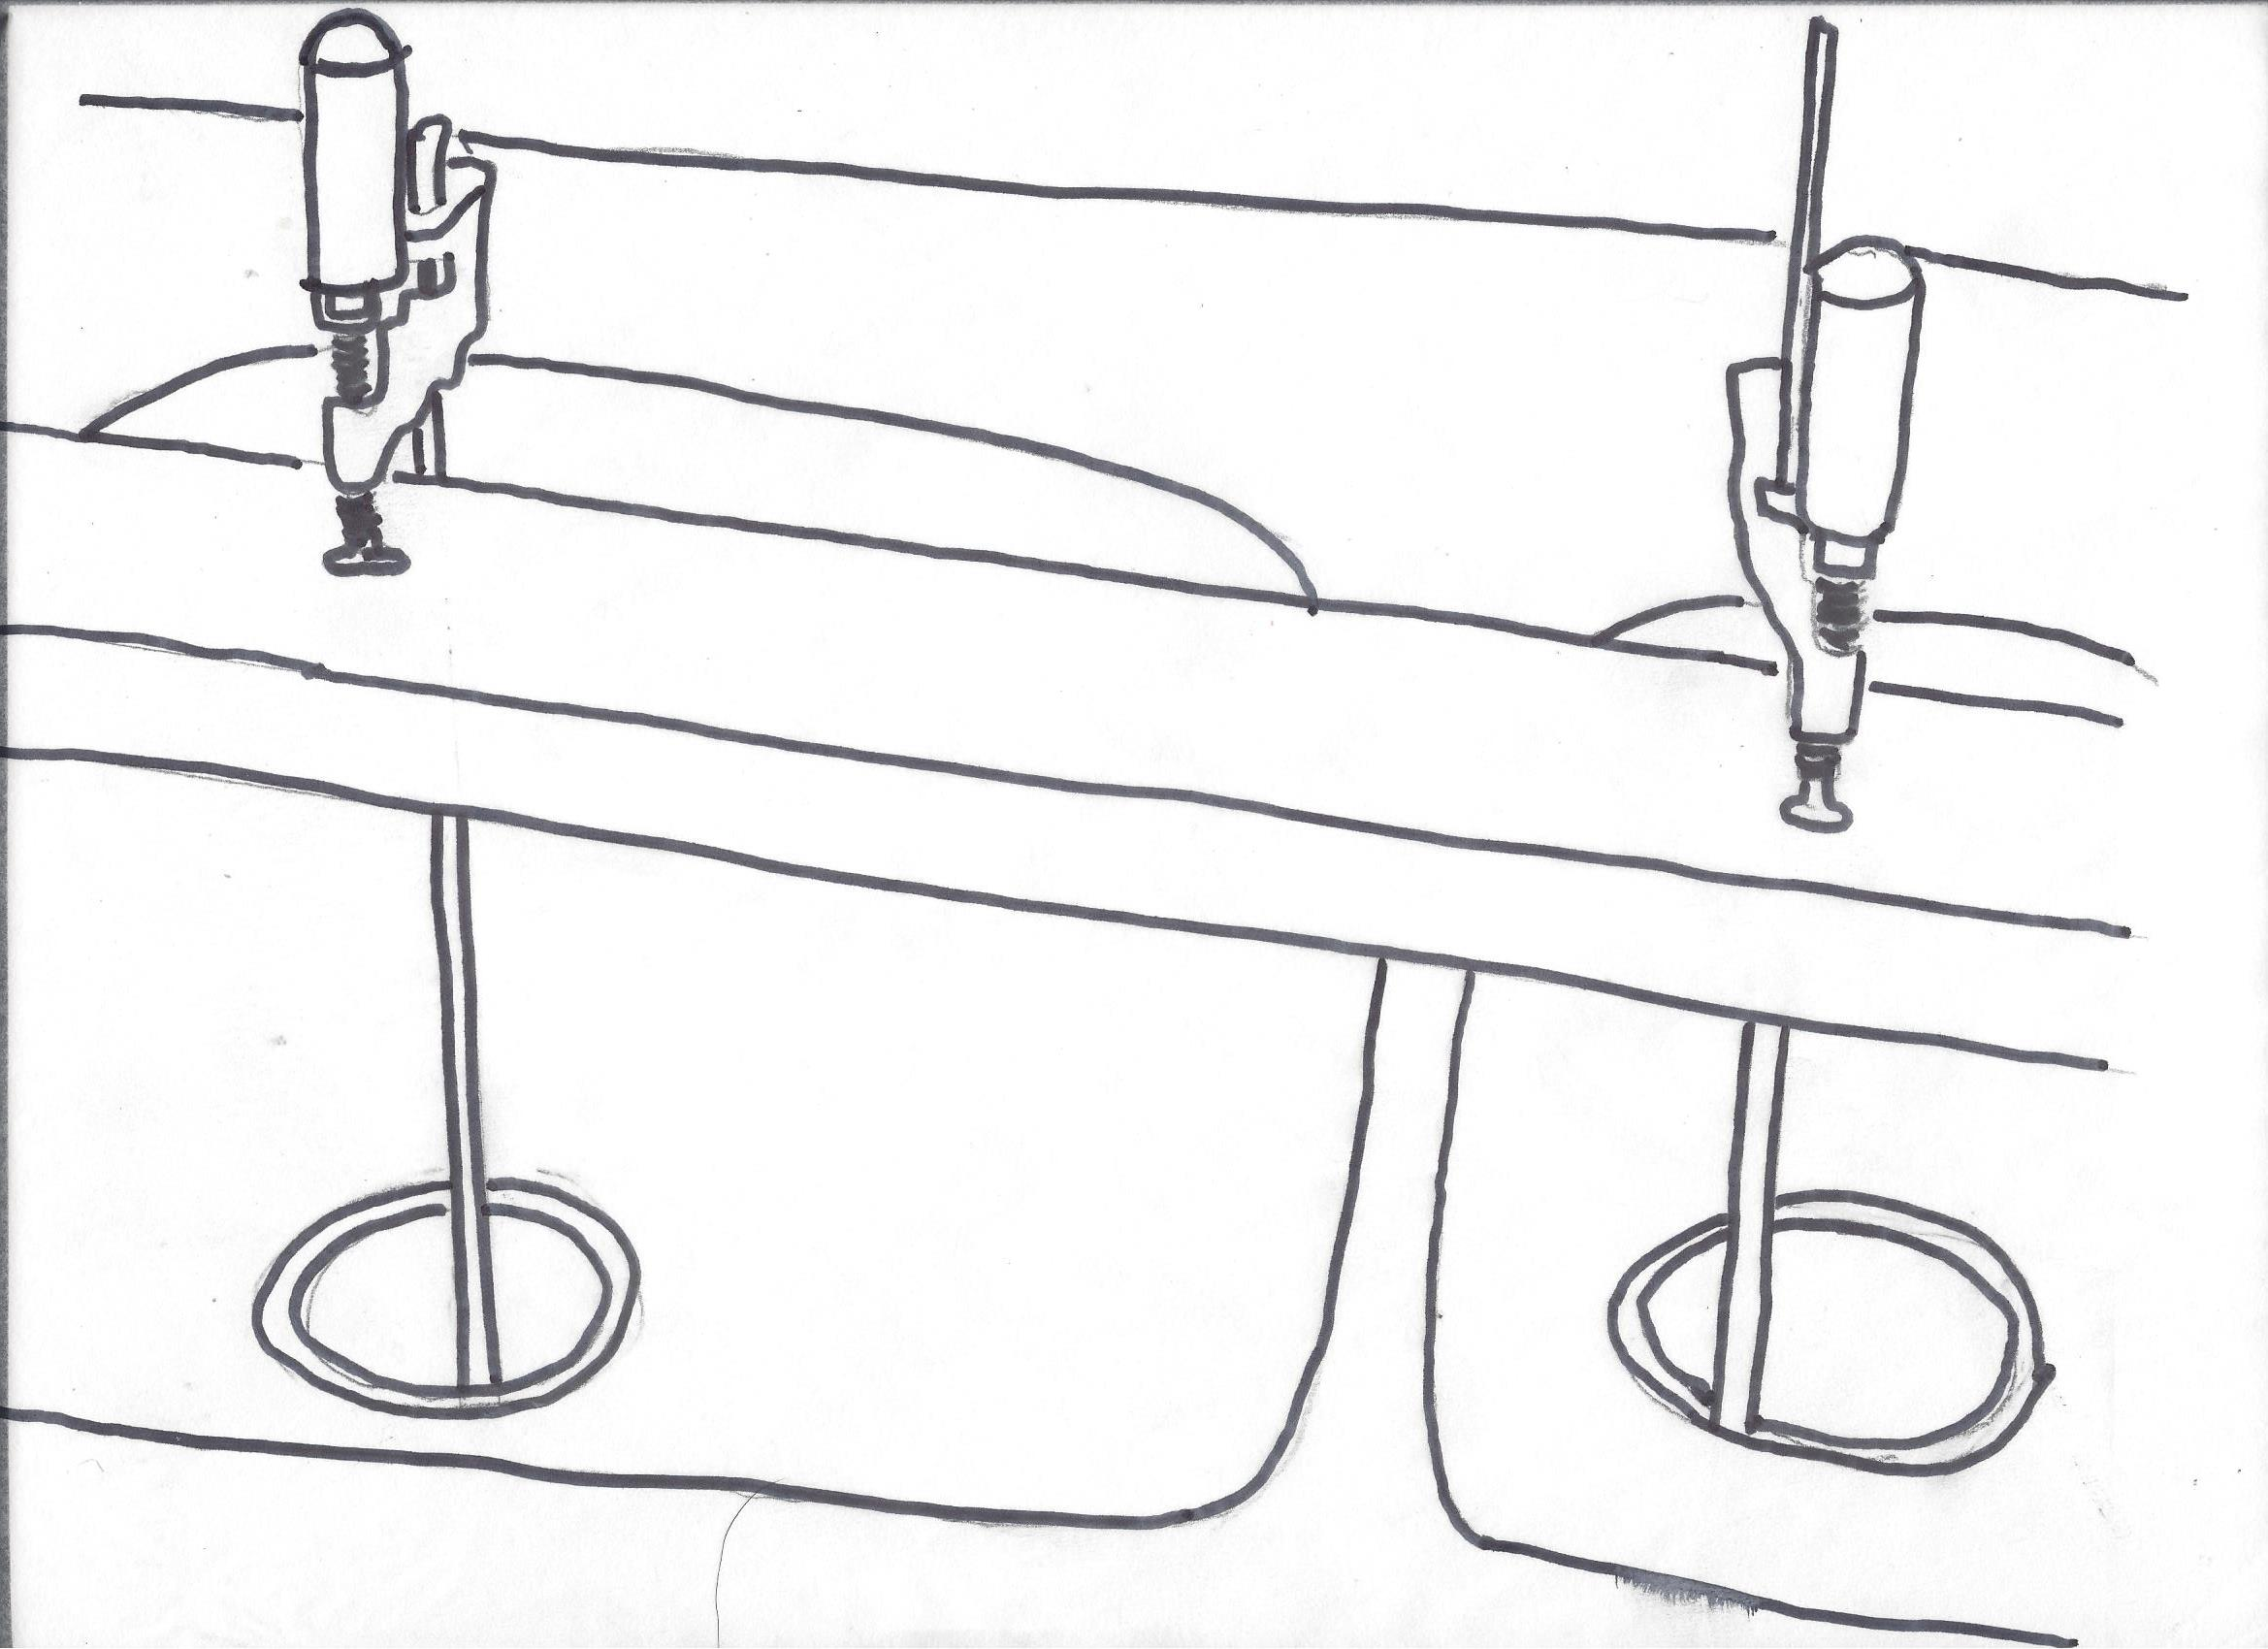 How To Install And Undermount Kitchen Sink